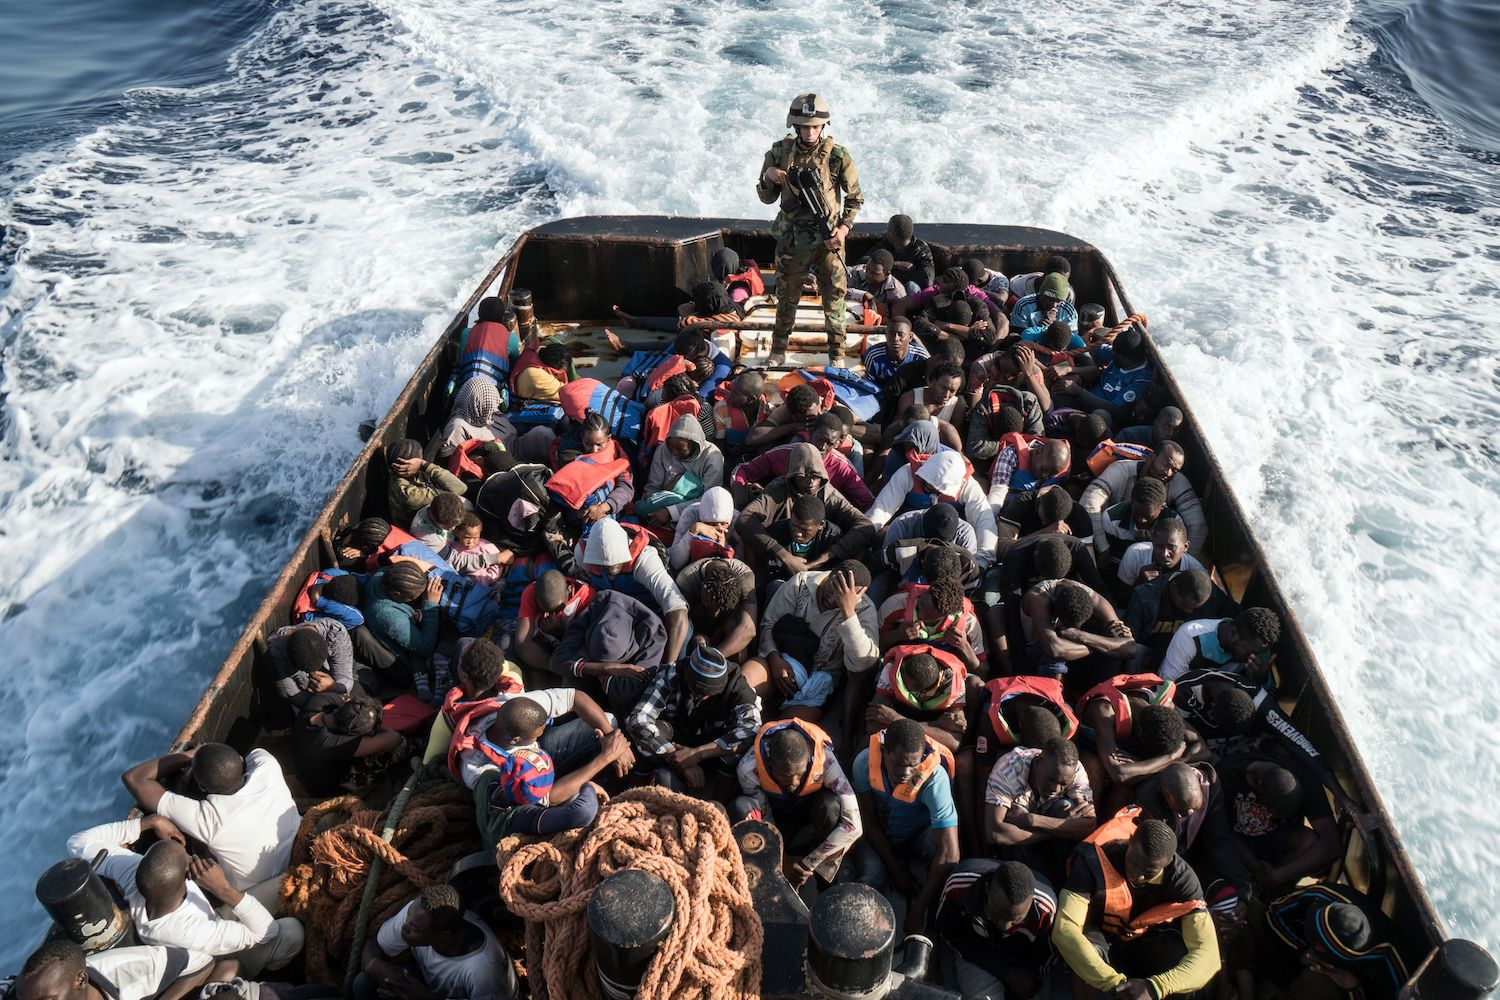 The West's Obsession With Border Security Is Breeding Instability